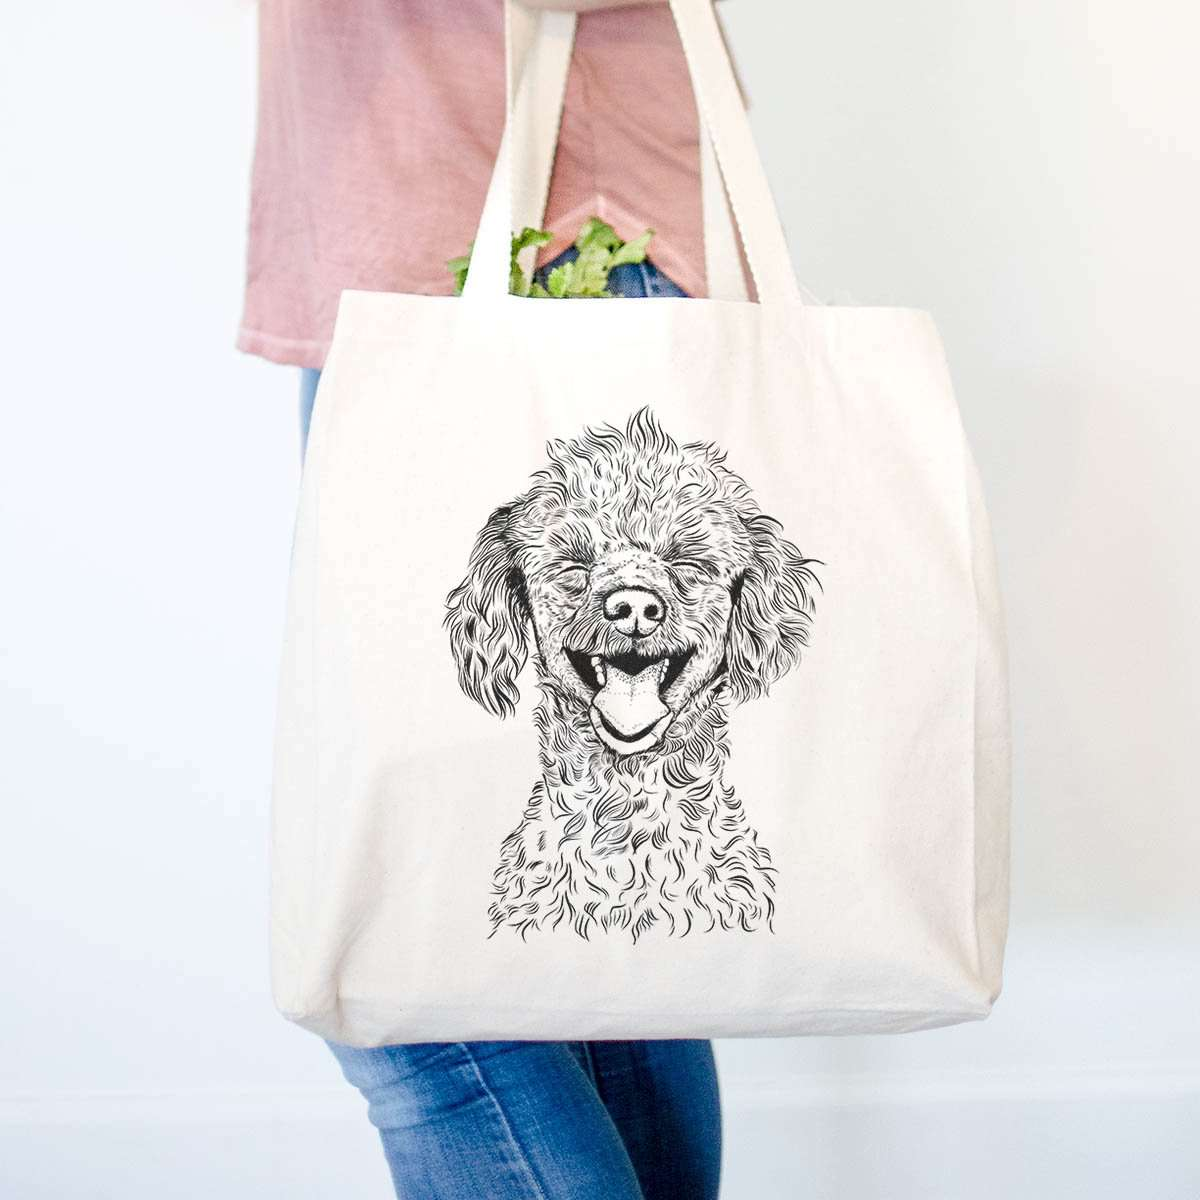 Rusty the Toy Poodle - Tote Bag